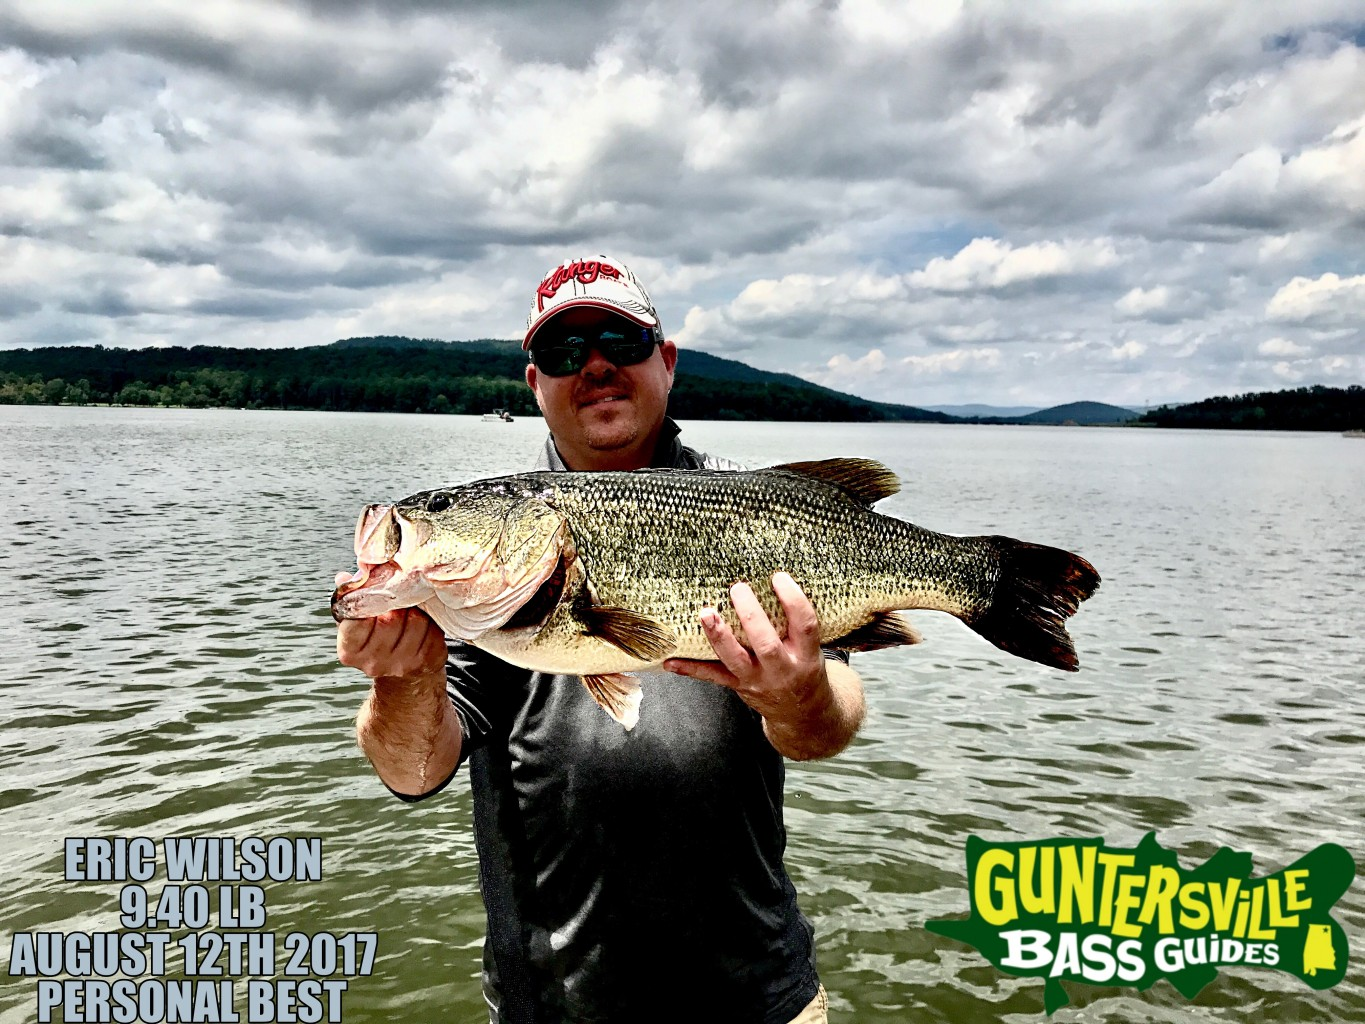 lake guntersville august 13th bass fishing report